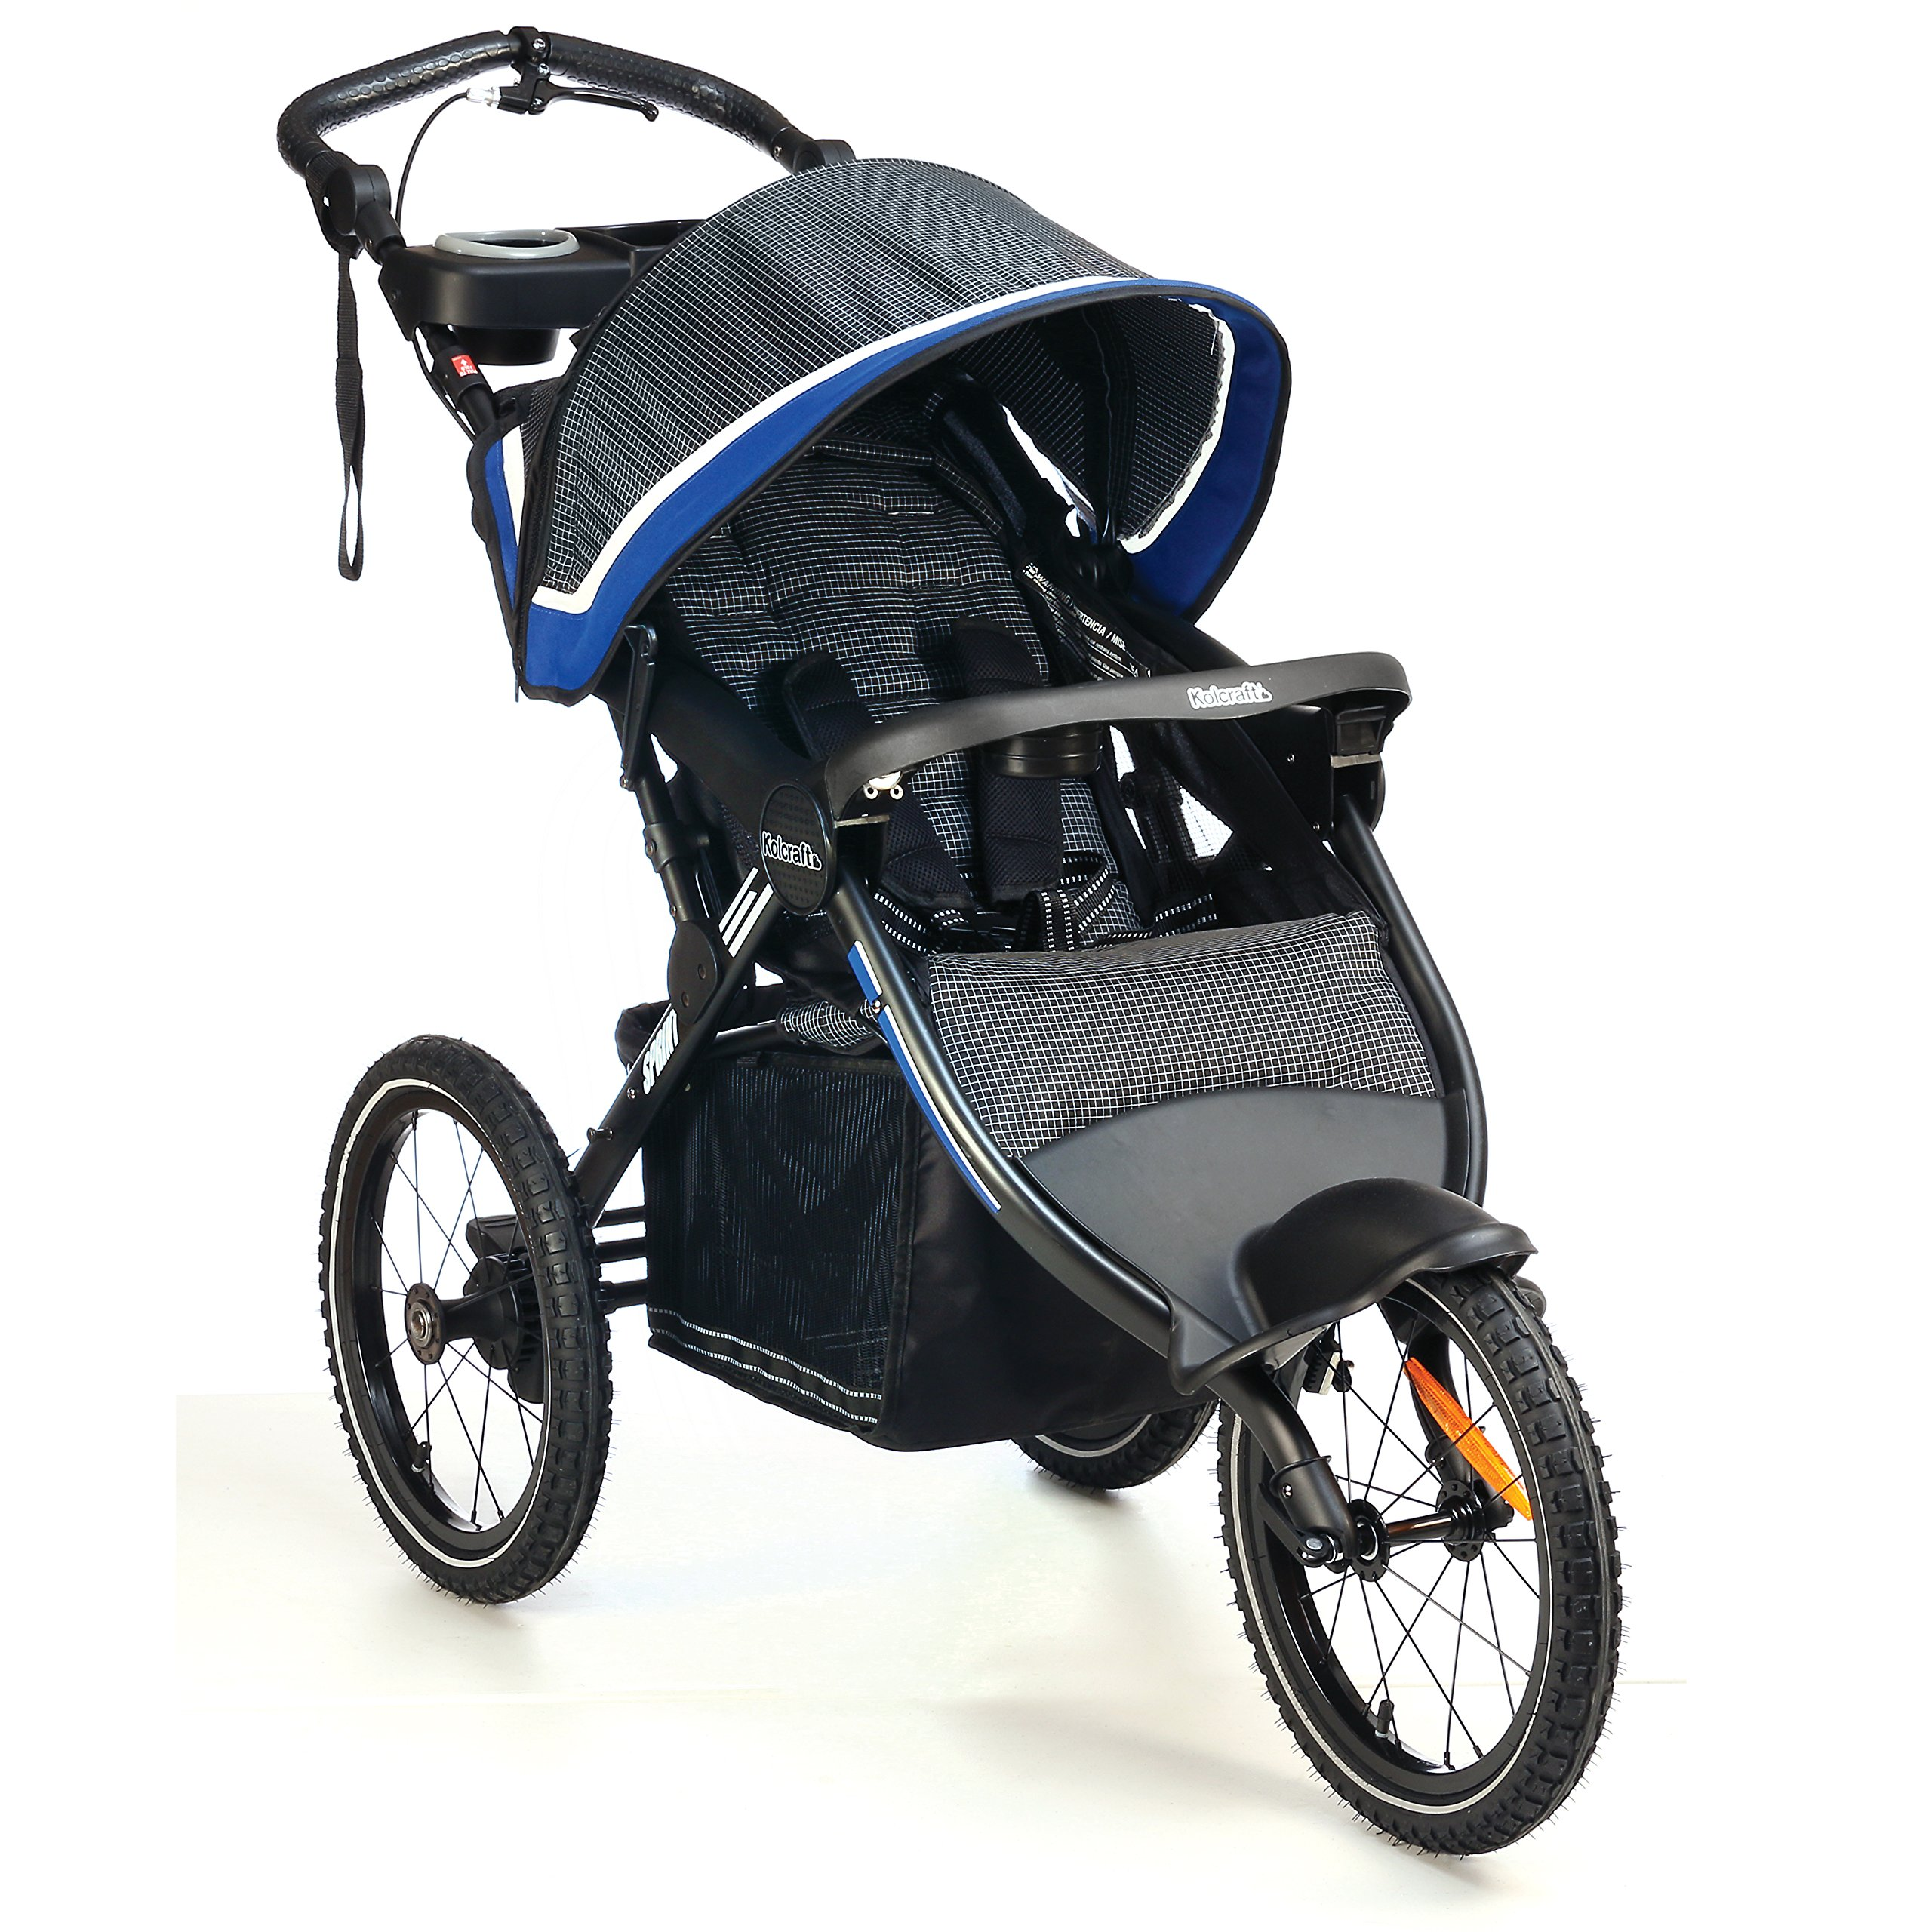 Kolcraft Sprint Pro Jogging Stroller -16'' Air-Filled Fixed Front Wheel, Lightweight,Hand Brake, 3 Seat Positions (Sonic Blue)